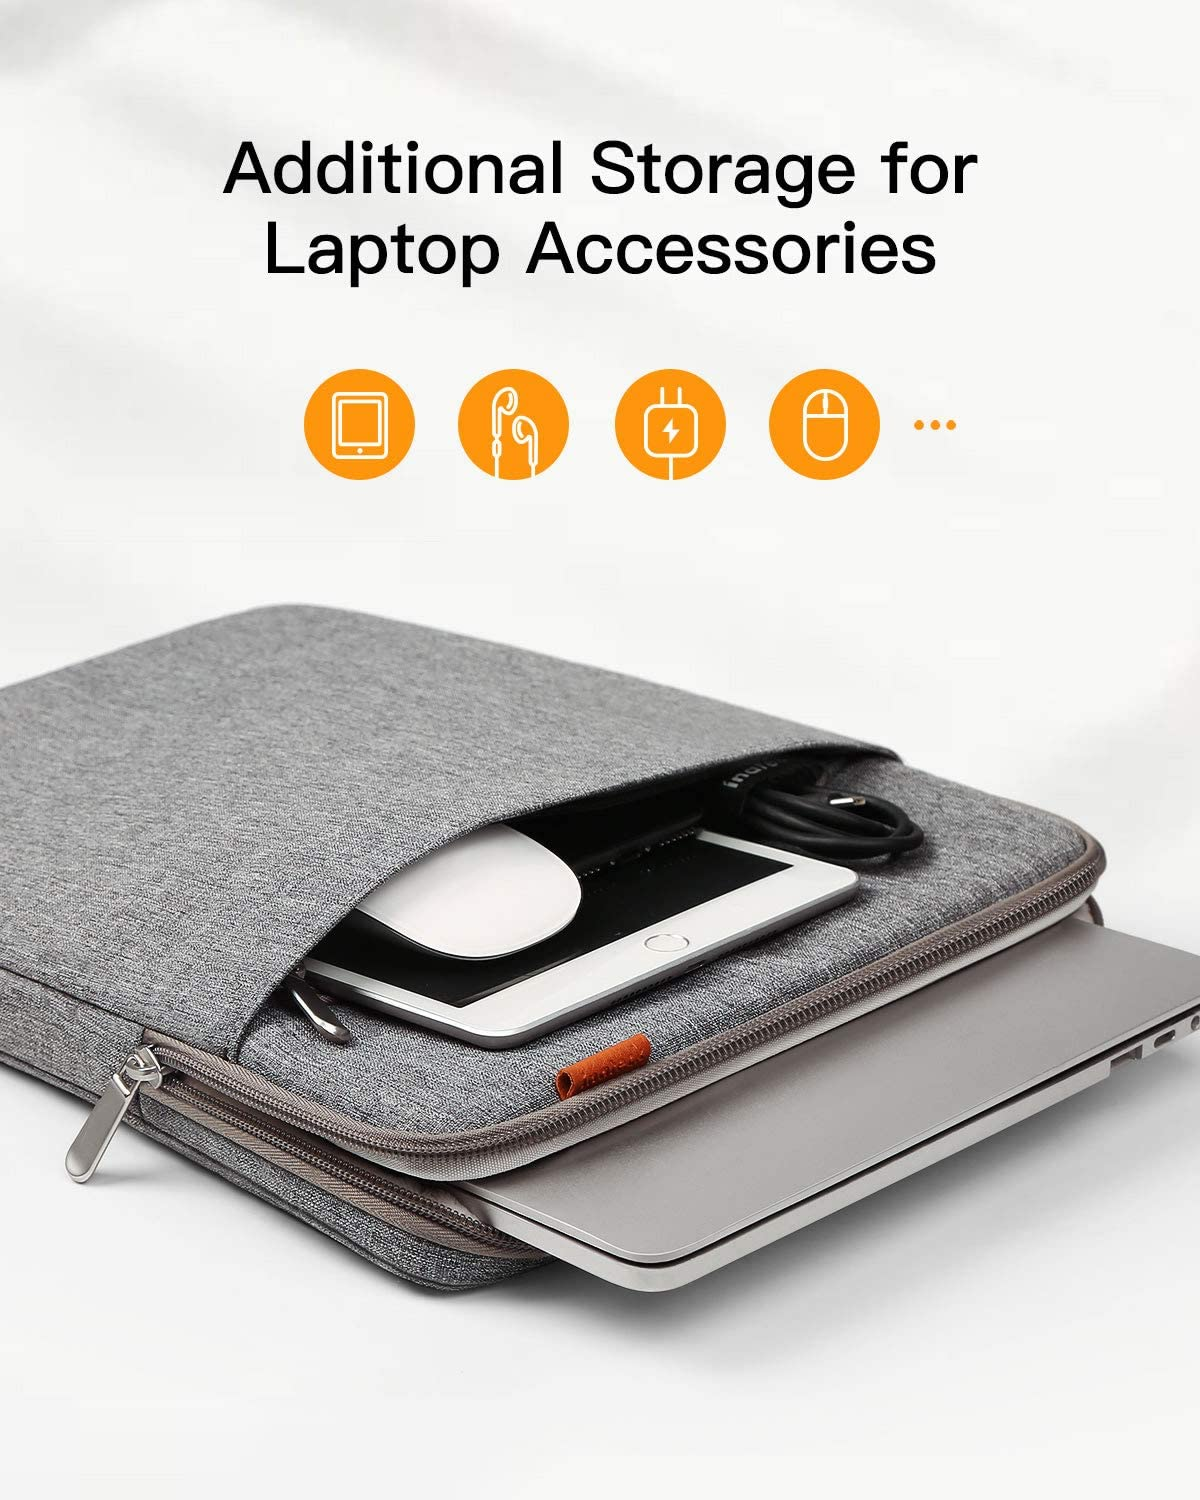 Inateck 13-13.3 Inch 360 Degree Shockproof Laptop Sleeve Case LB01006-13, Gray